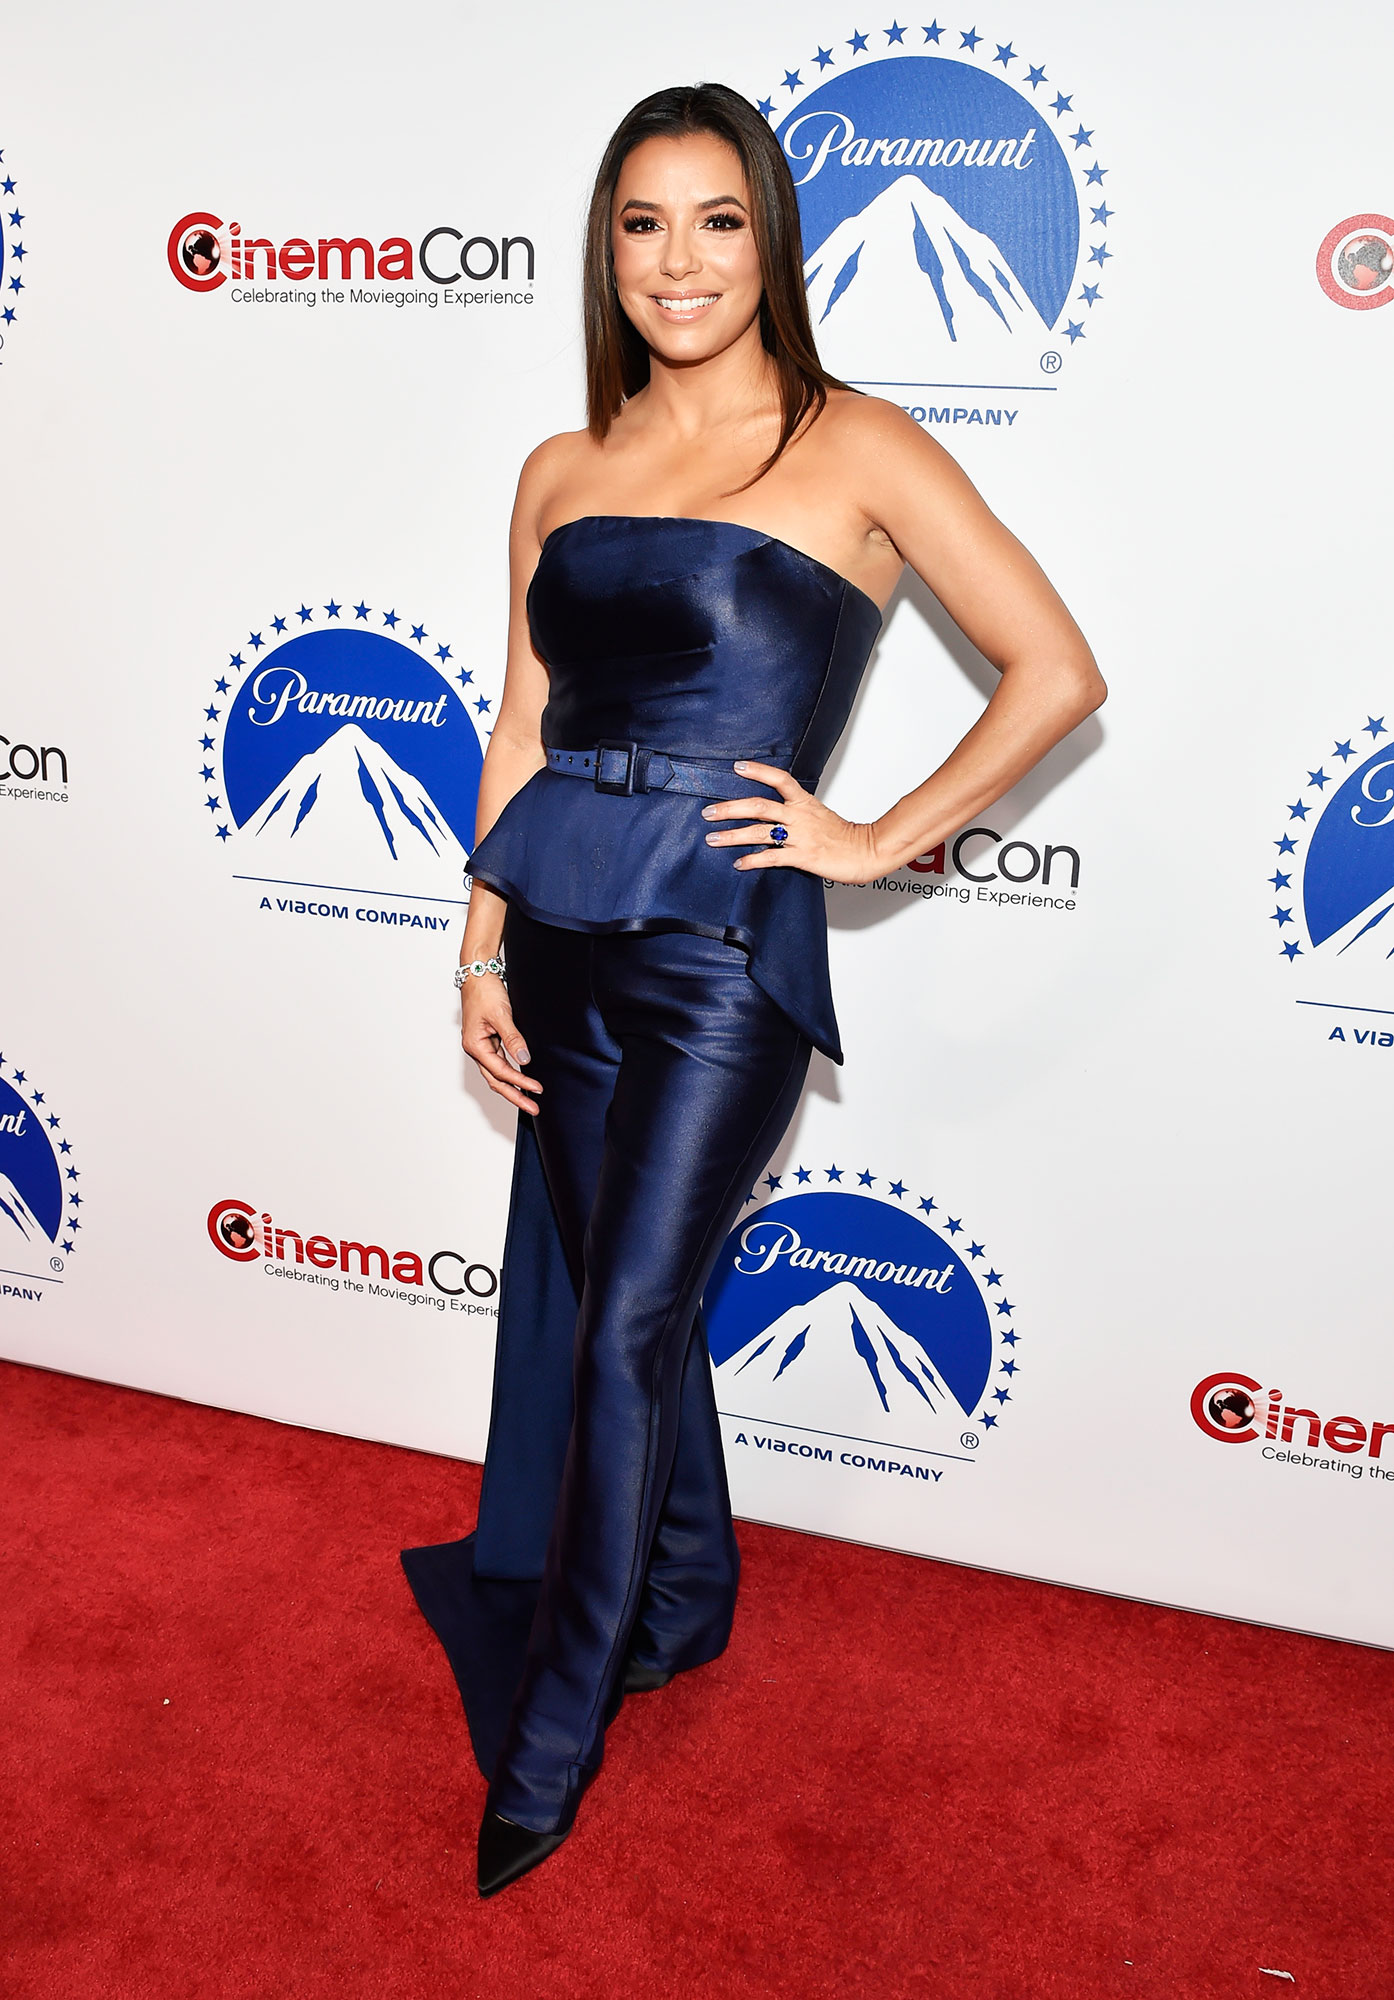 Eva Longoria The Stars Are Bringing Their Style A-Game to CinemaCon - Still basking in that new mom glow, the multi-hyphenate served up boss-lady vibes in a Vitor Zerbinato jumpsuit, Victoria Beckham pumps and Nigora Tabayer jewels on Thursday, April 4.